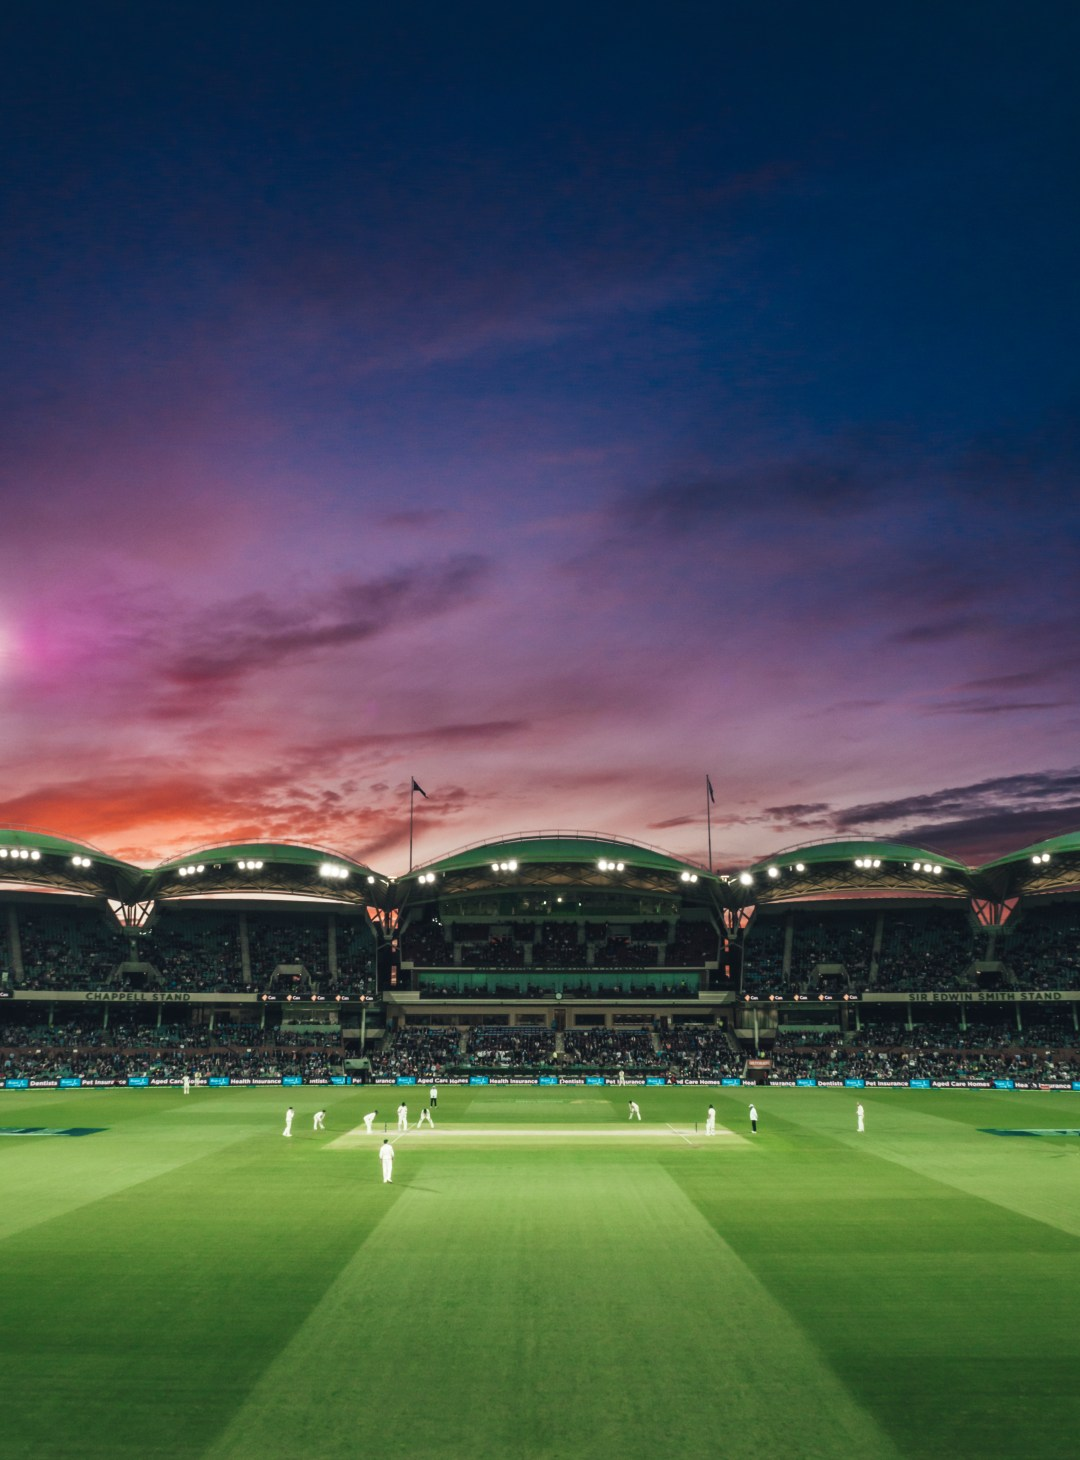 100+ Cricket Pictures [HD]   Download Free Images & Stock Photos on Unsplash